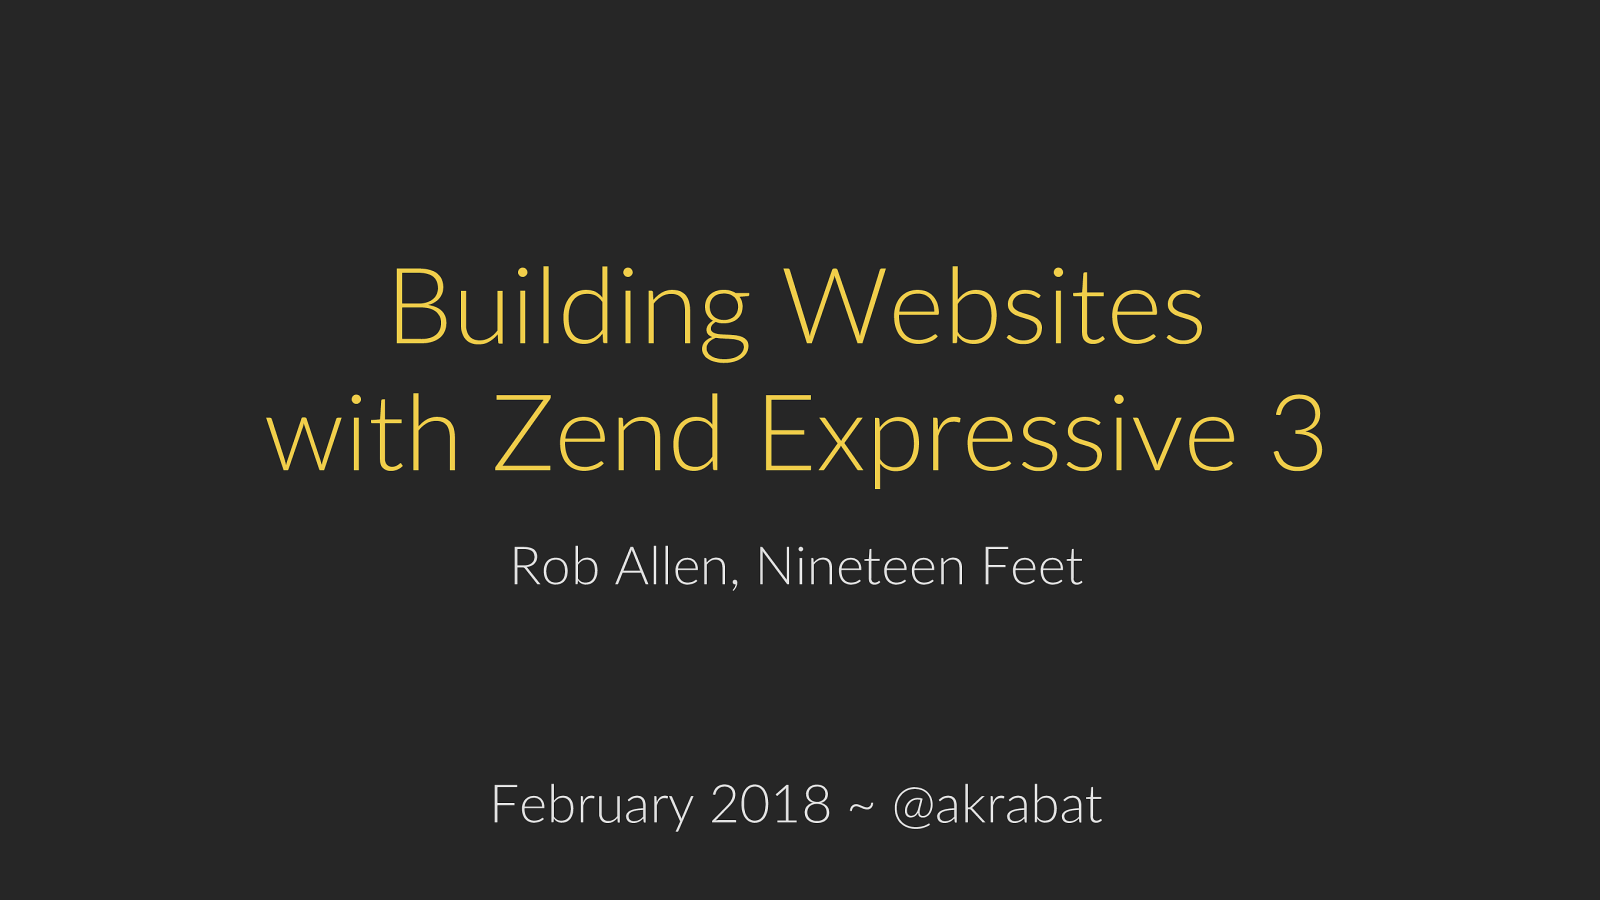 Building Websites with Zend Expressive 3